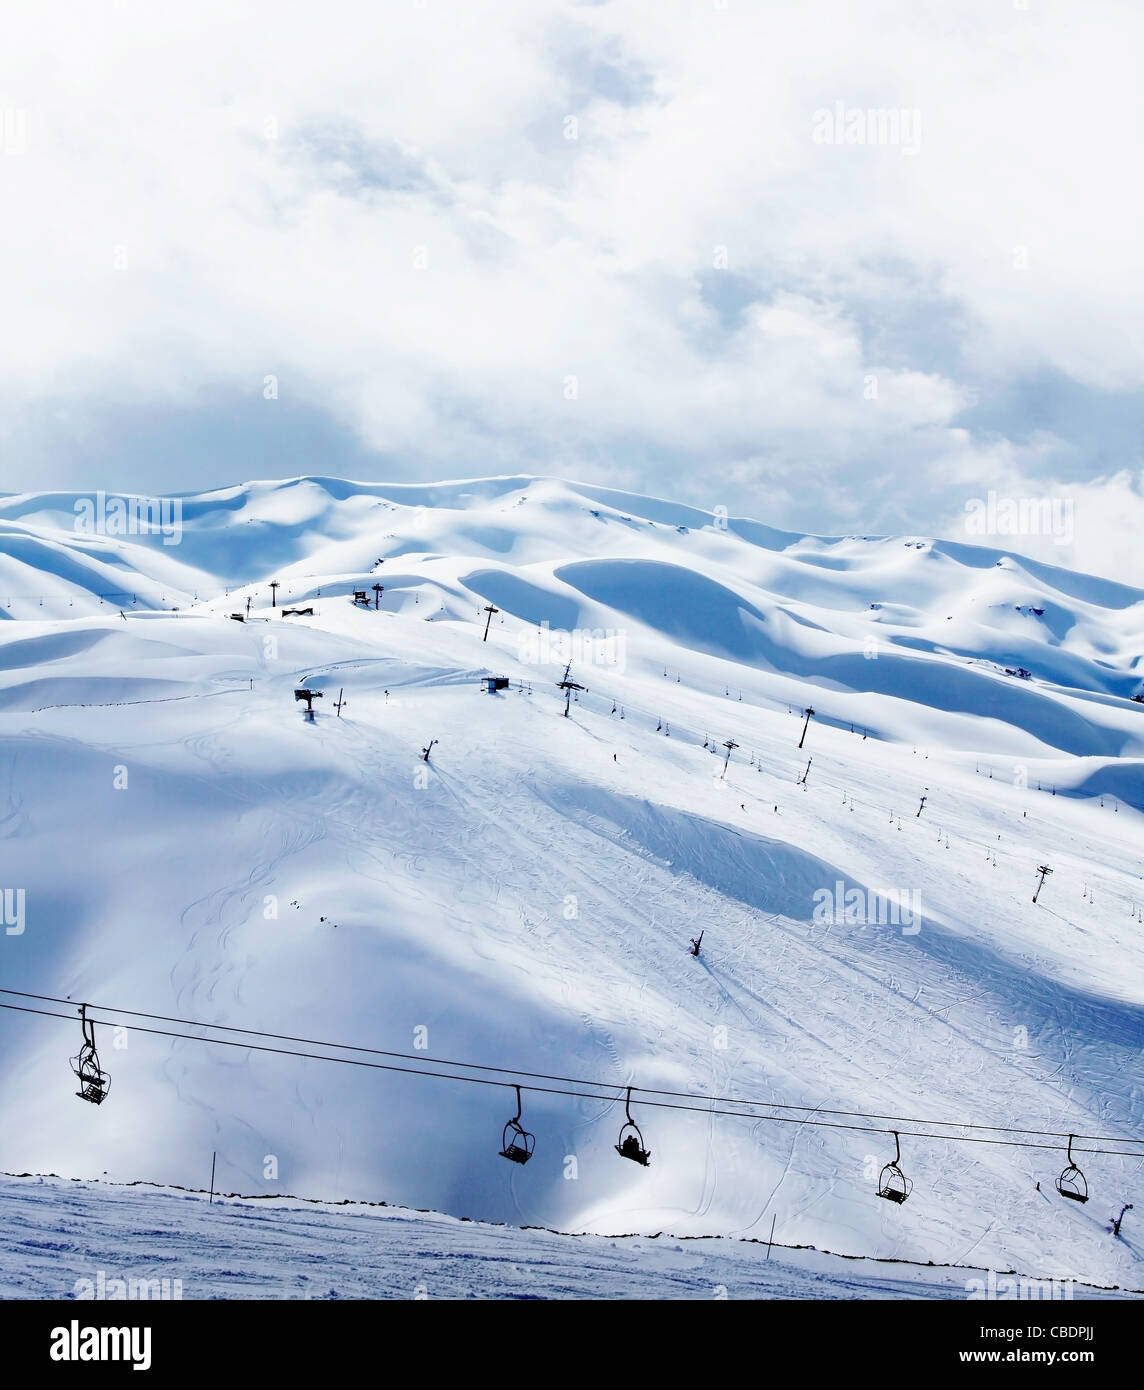 Winter mountain ski resort landscape with snow and chairlift - Stock Image